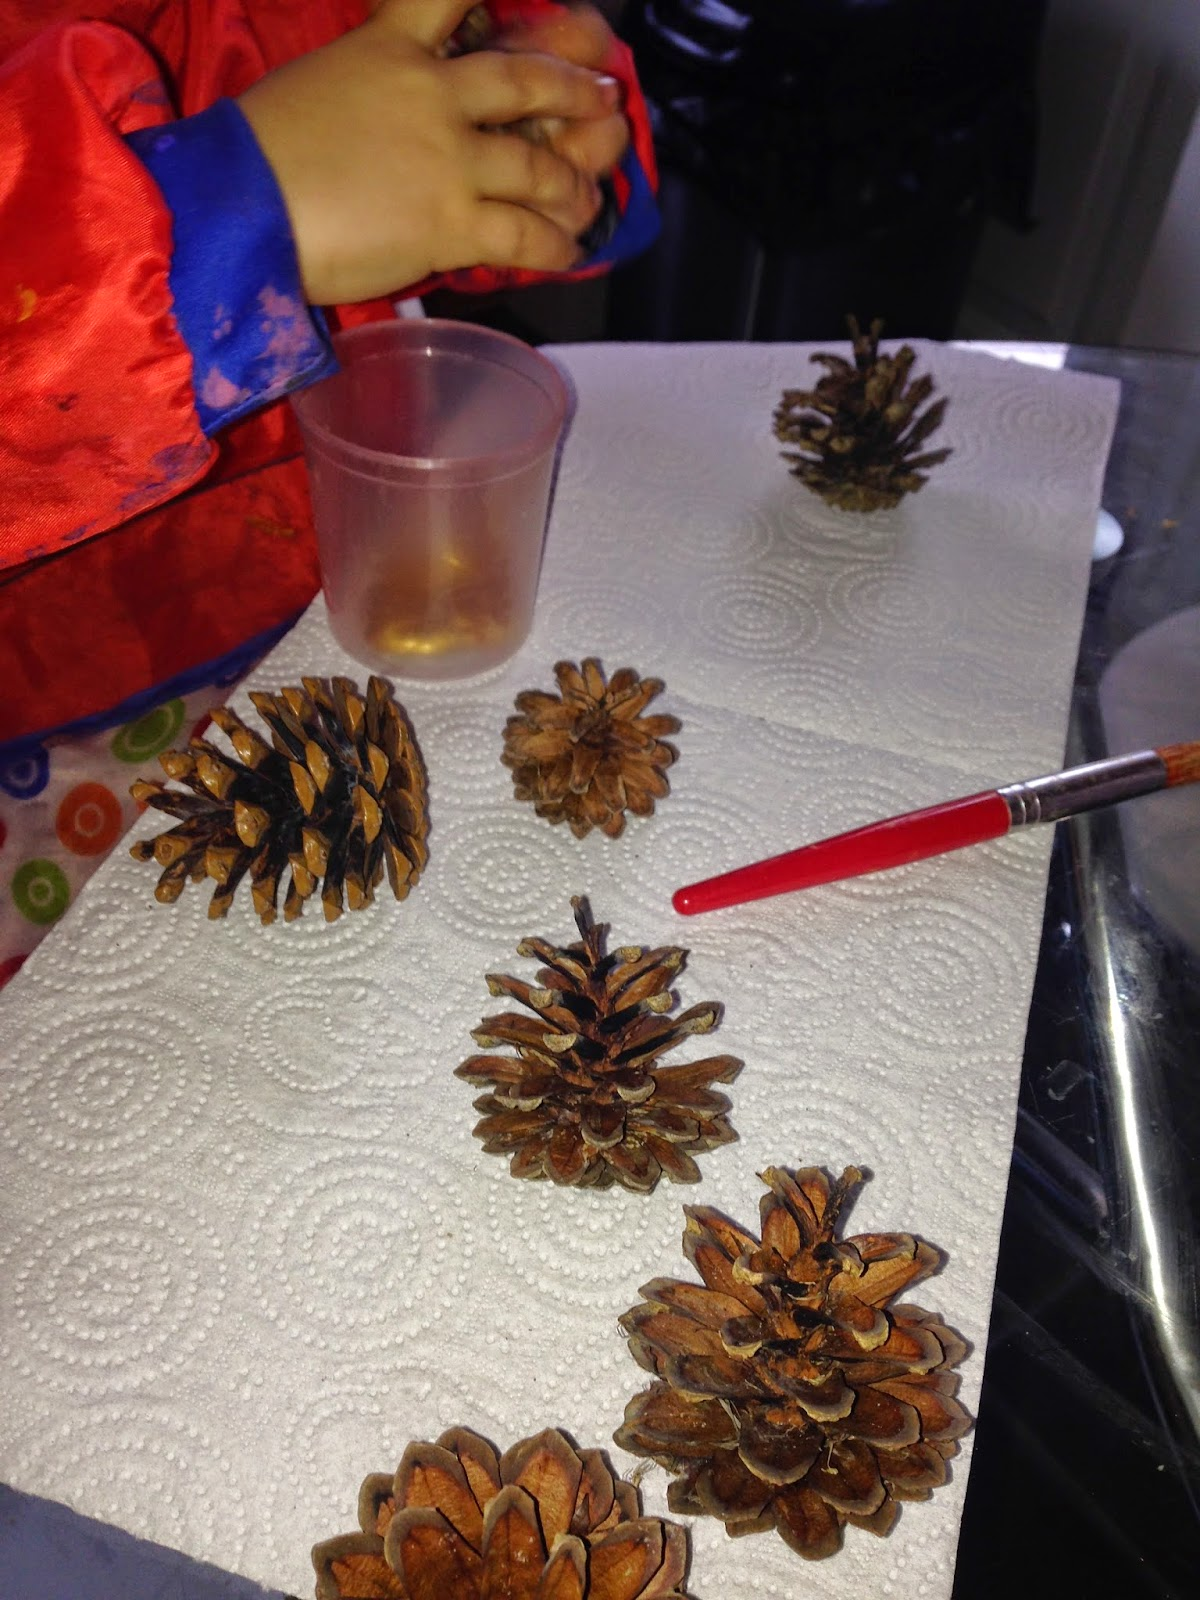 Christmas tree decoration craft for kids.